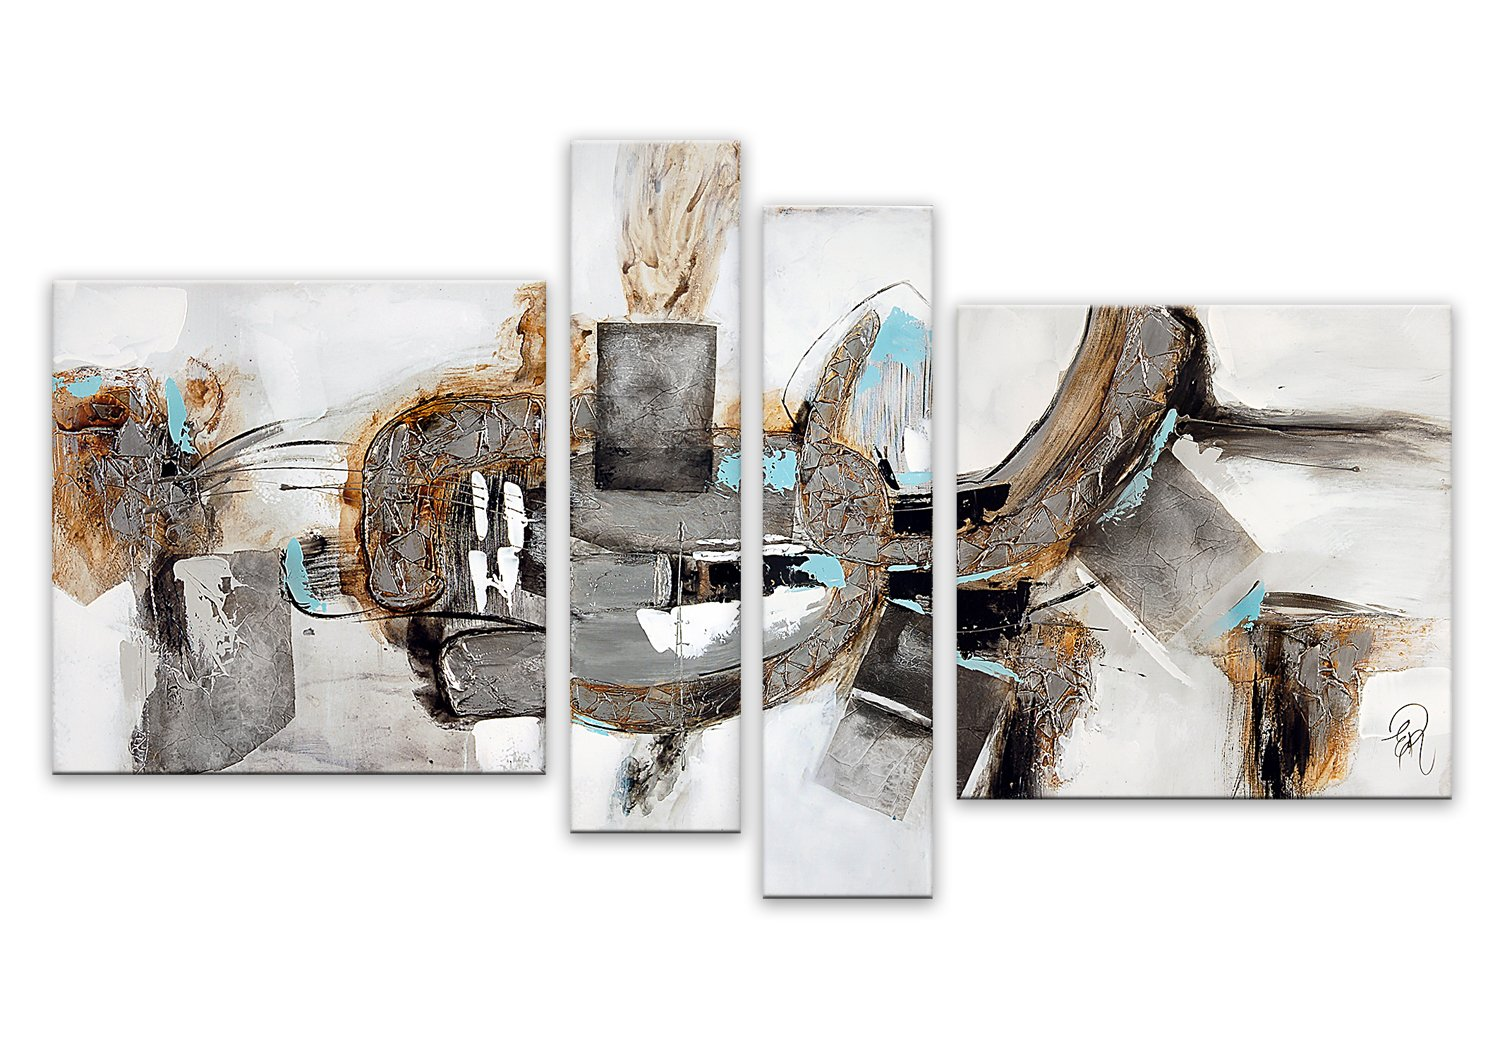 World Art TW60089 Aesthetic Wooden Frame Abstract 110x150x3.5 cm Size: 44 x 60 x 2 Inch